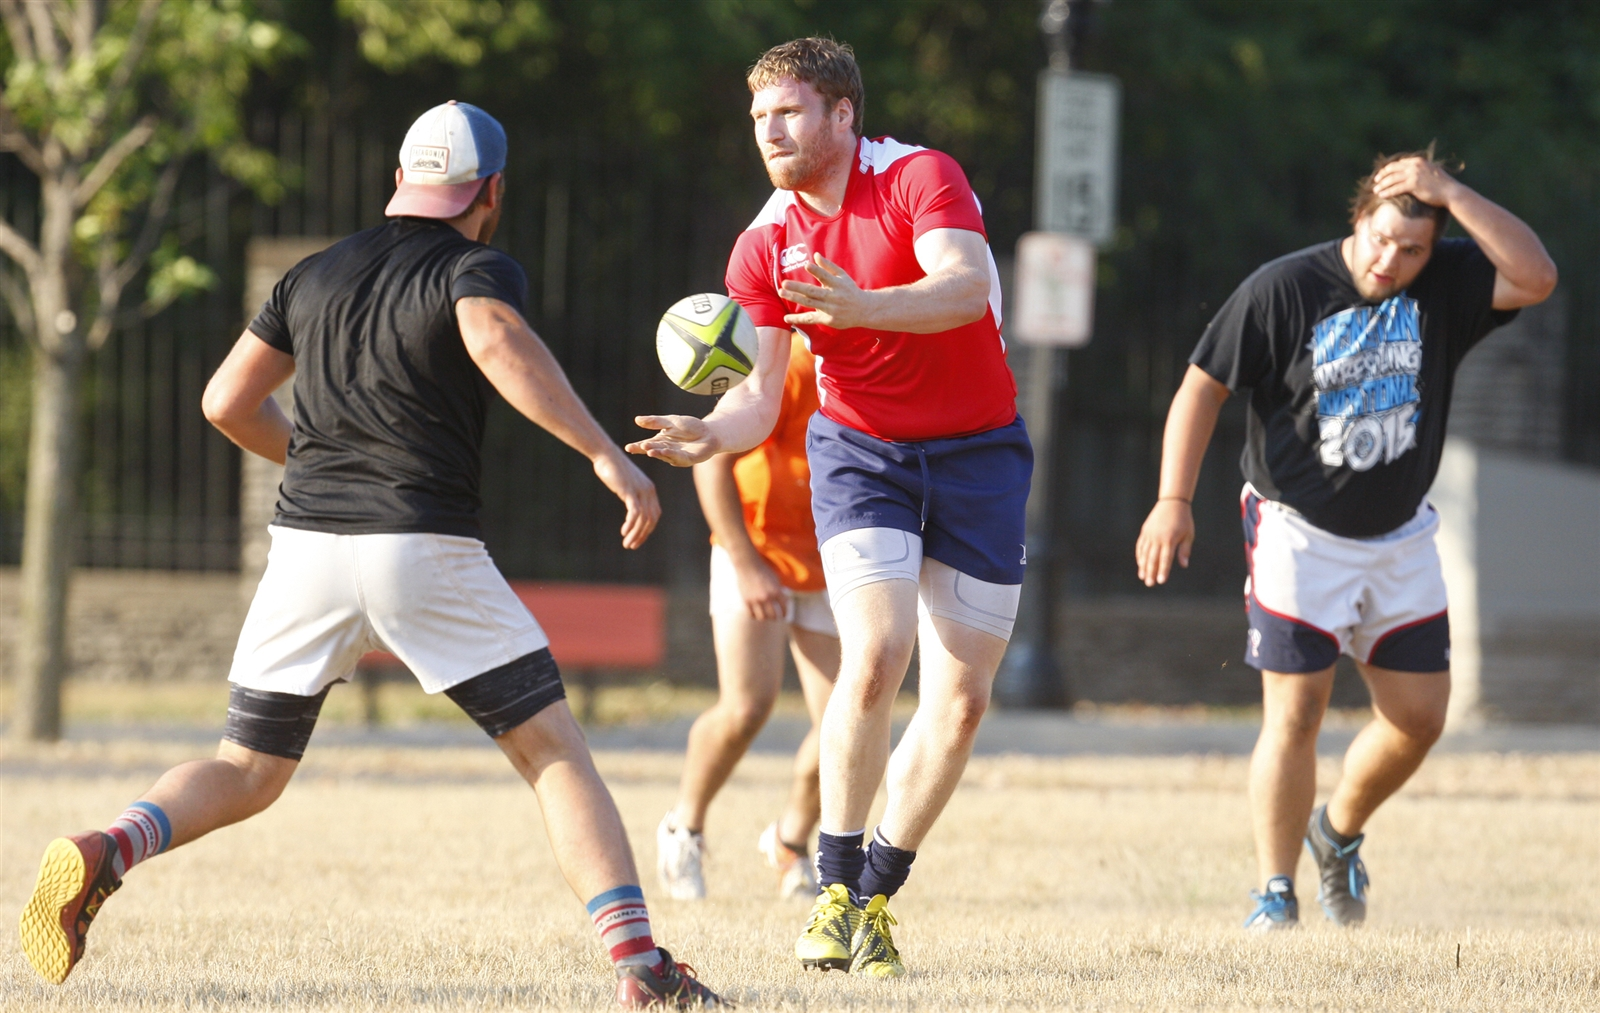 Buffalo Rugby Club player Rick Wiess during practice at Delaware Park.